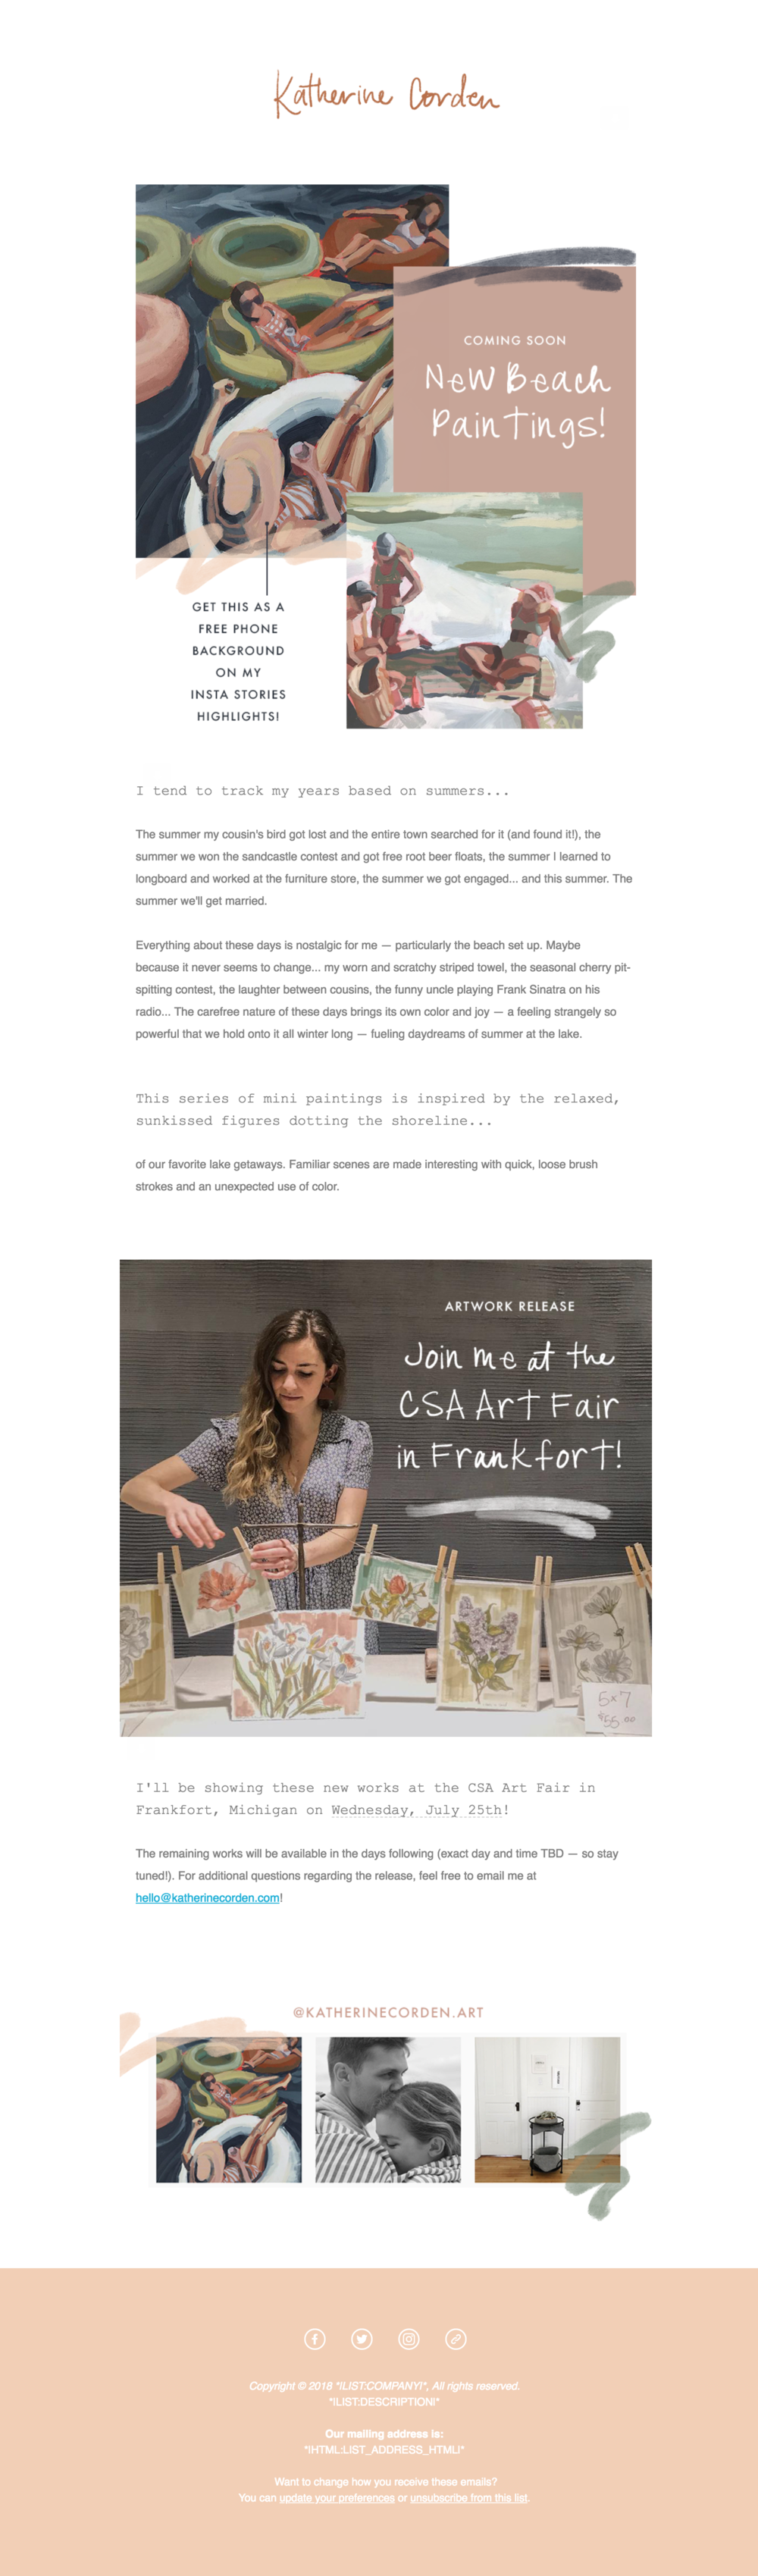 Katherine Corden Simple Newsletter Template.png